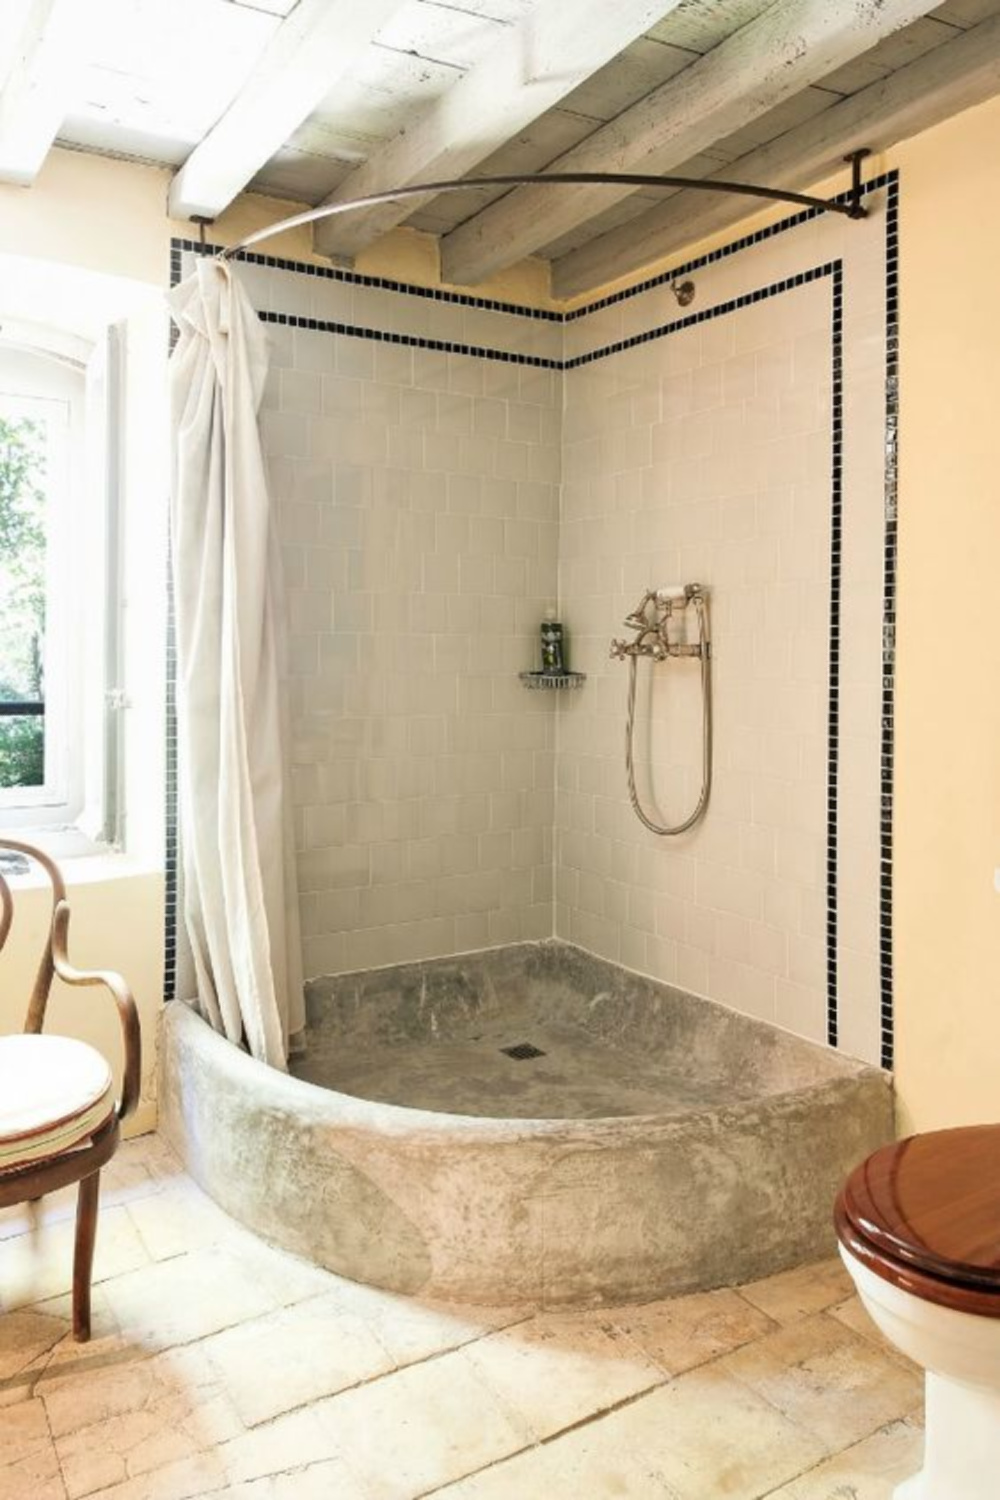 Old world style shower in a bathroom in a French chateau - Haven In. #stoneshower #bathroomdesign #oldworldstyle